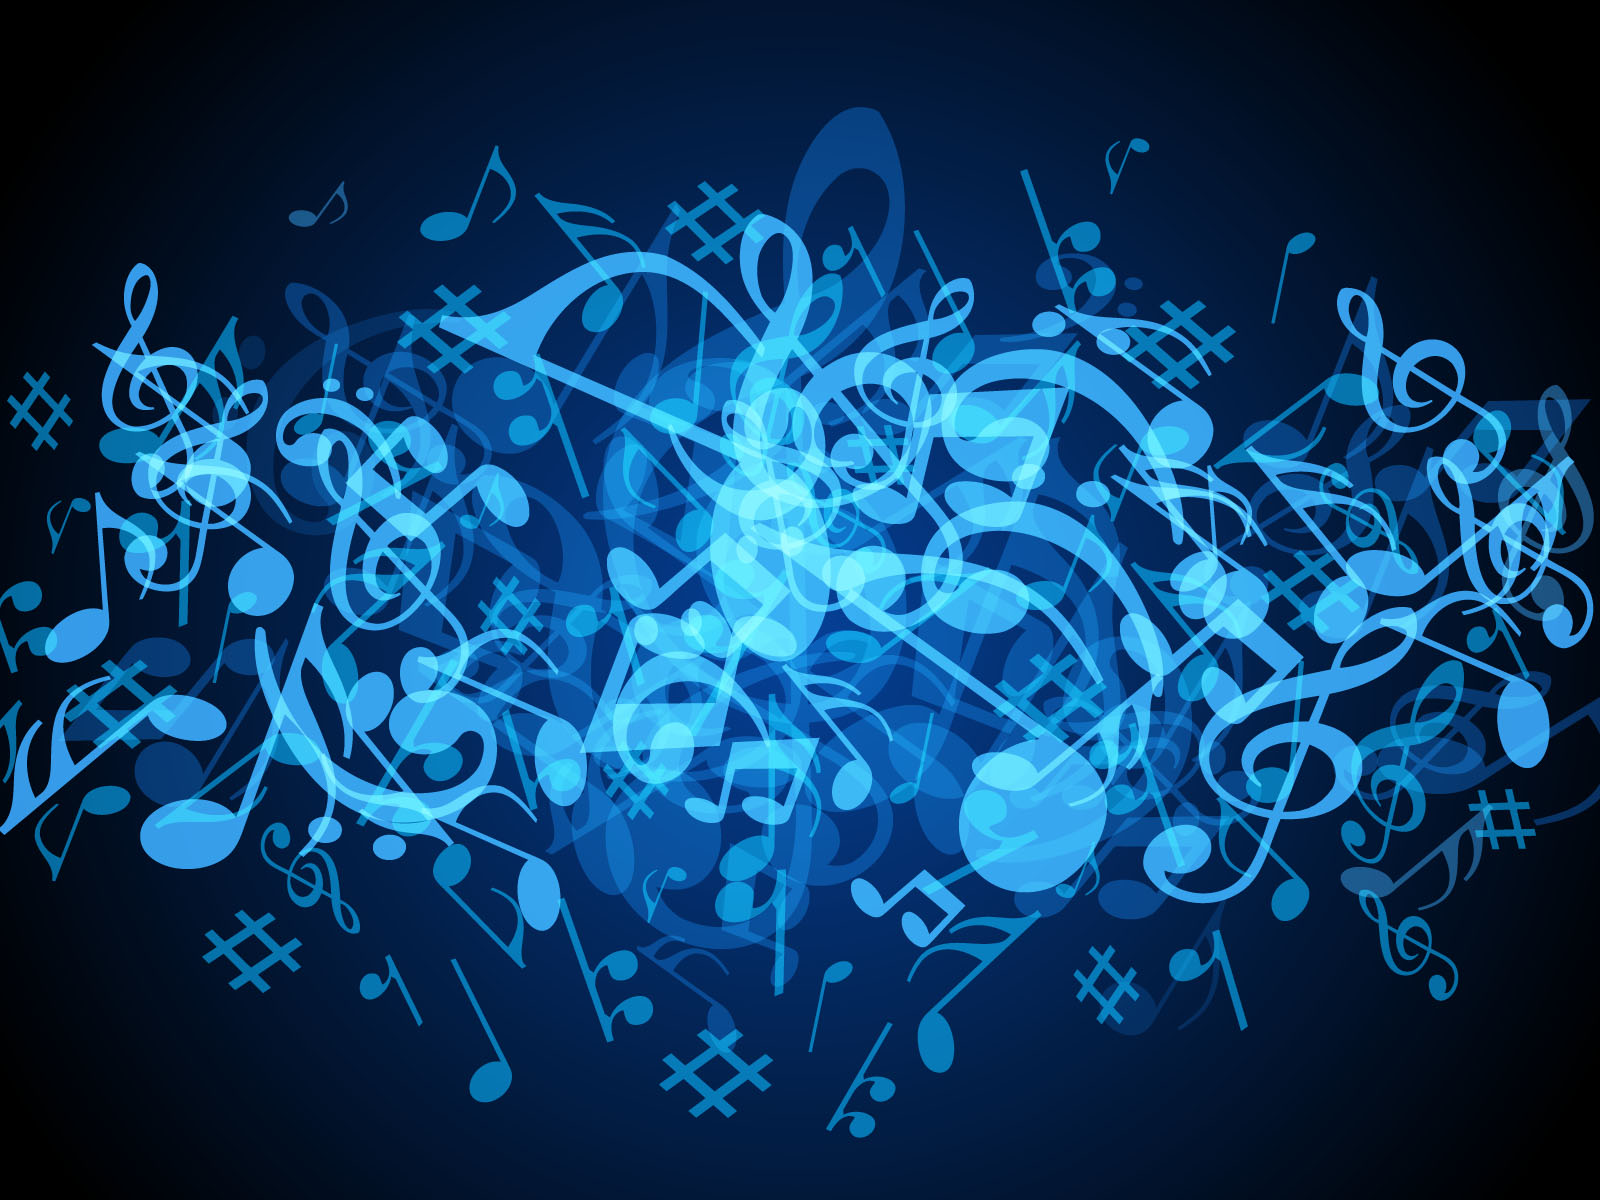 Music Notes Wallpaper High Definition Quality Widescreen 1600x1200